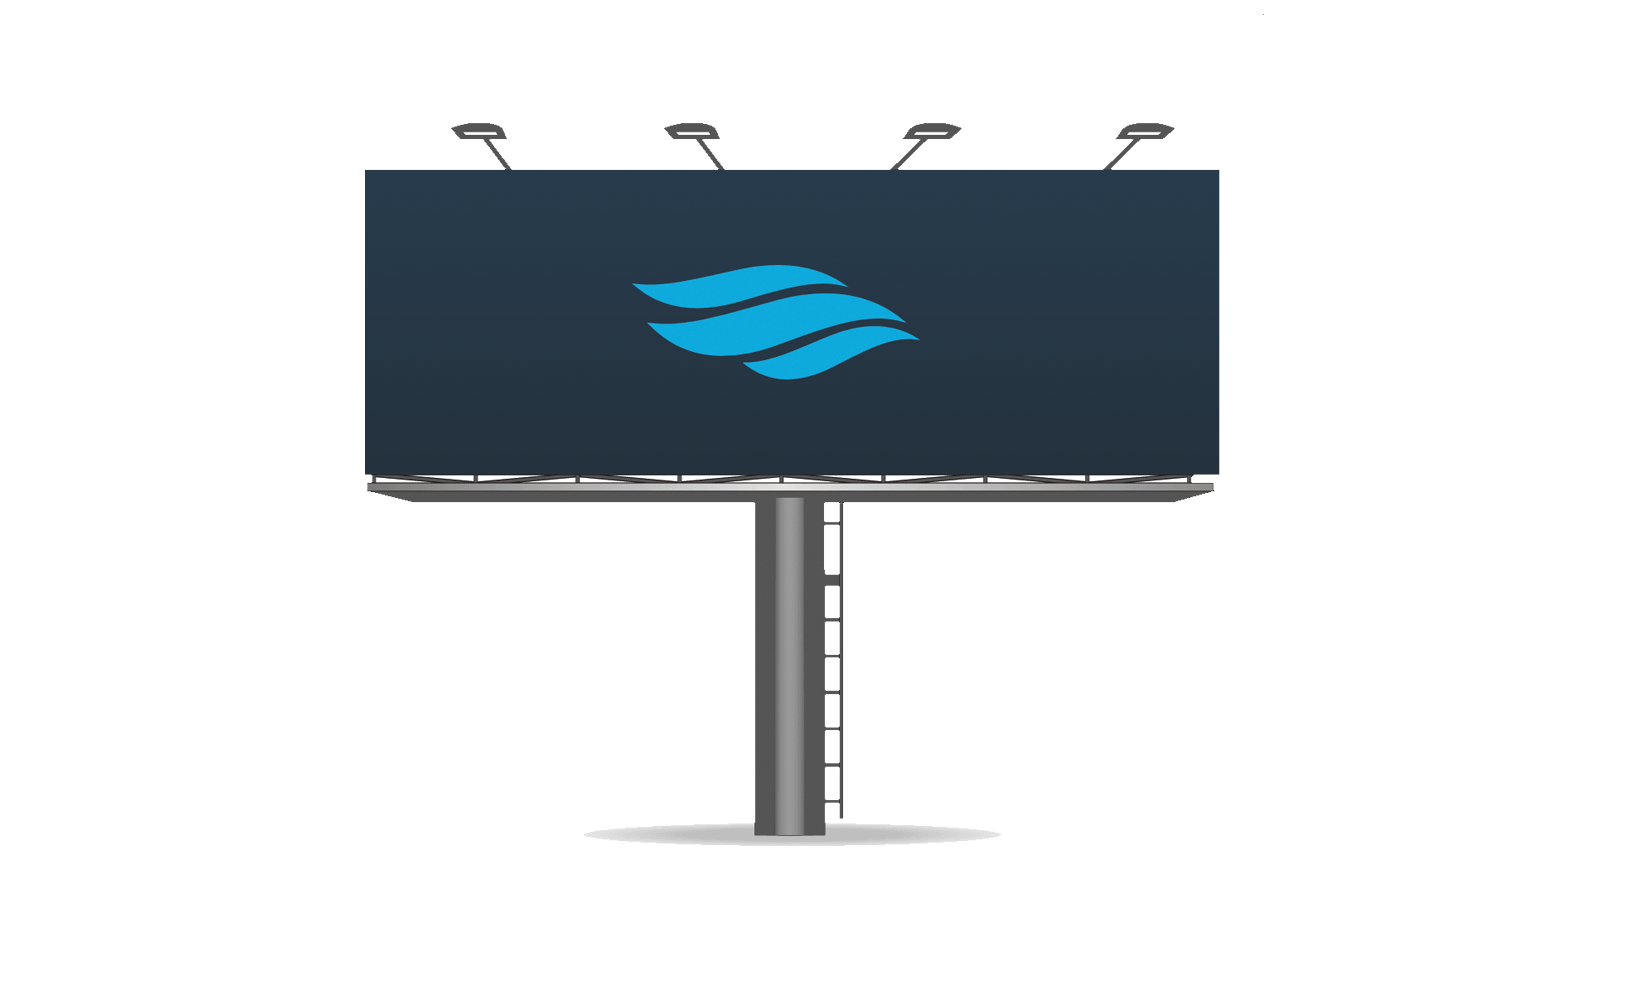 Billboard vector png. Free cut out transparentpng